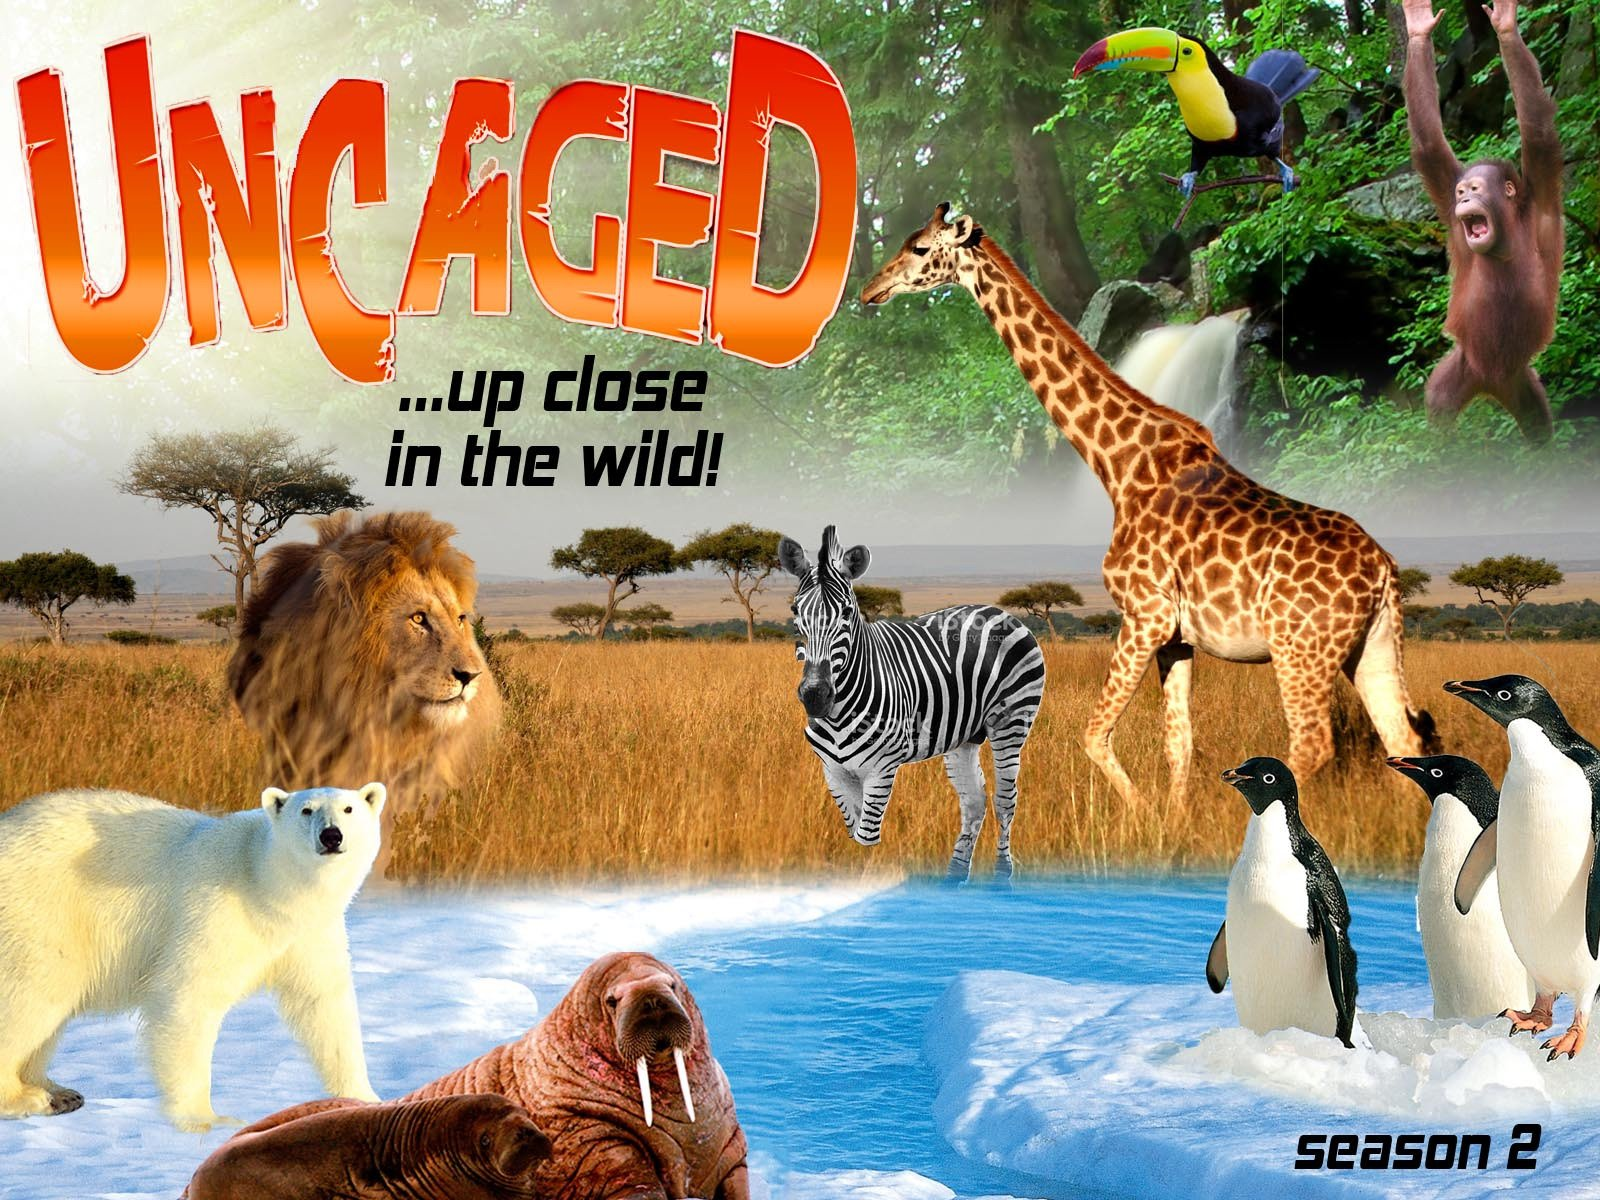 Uncaged...up close in the wild - Season 2